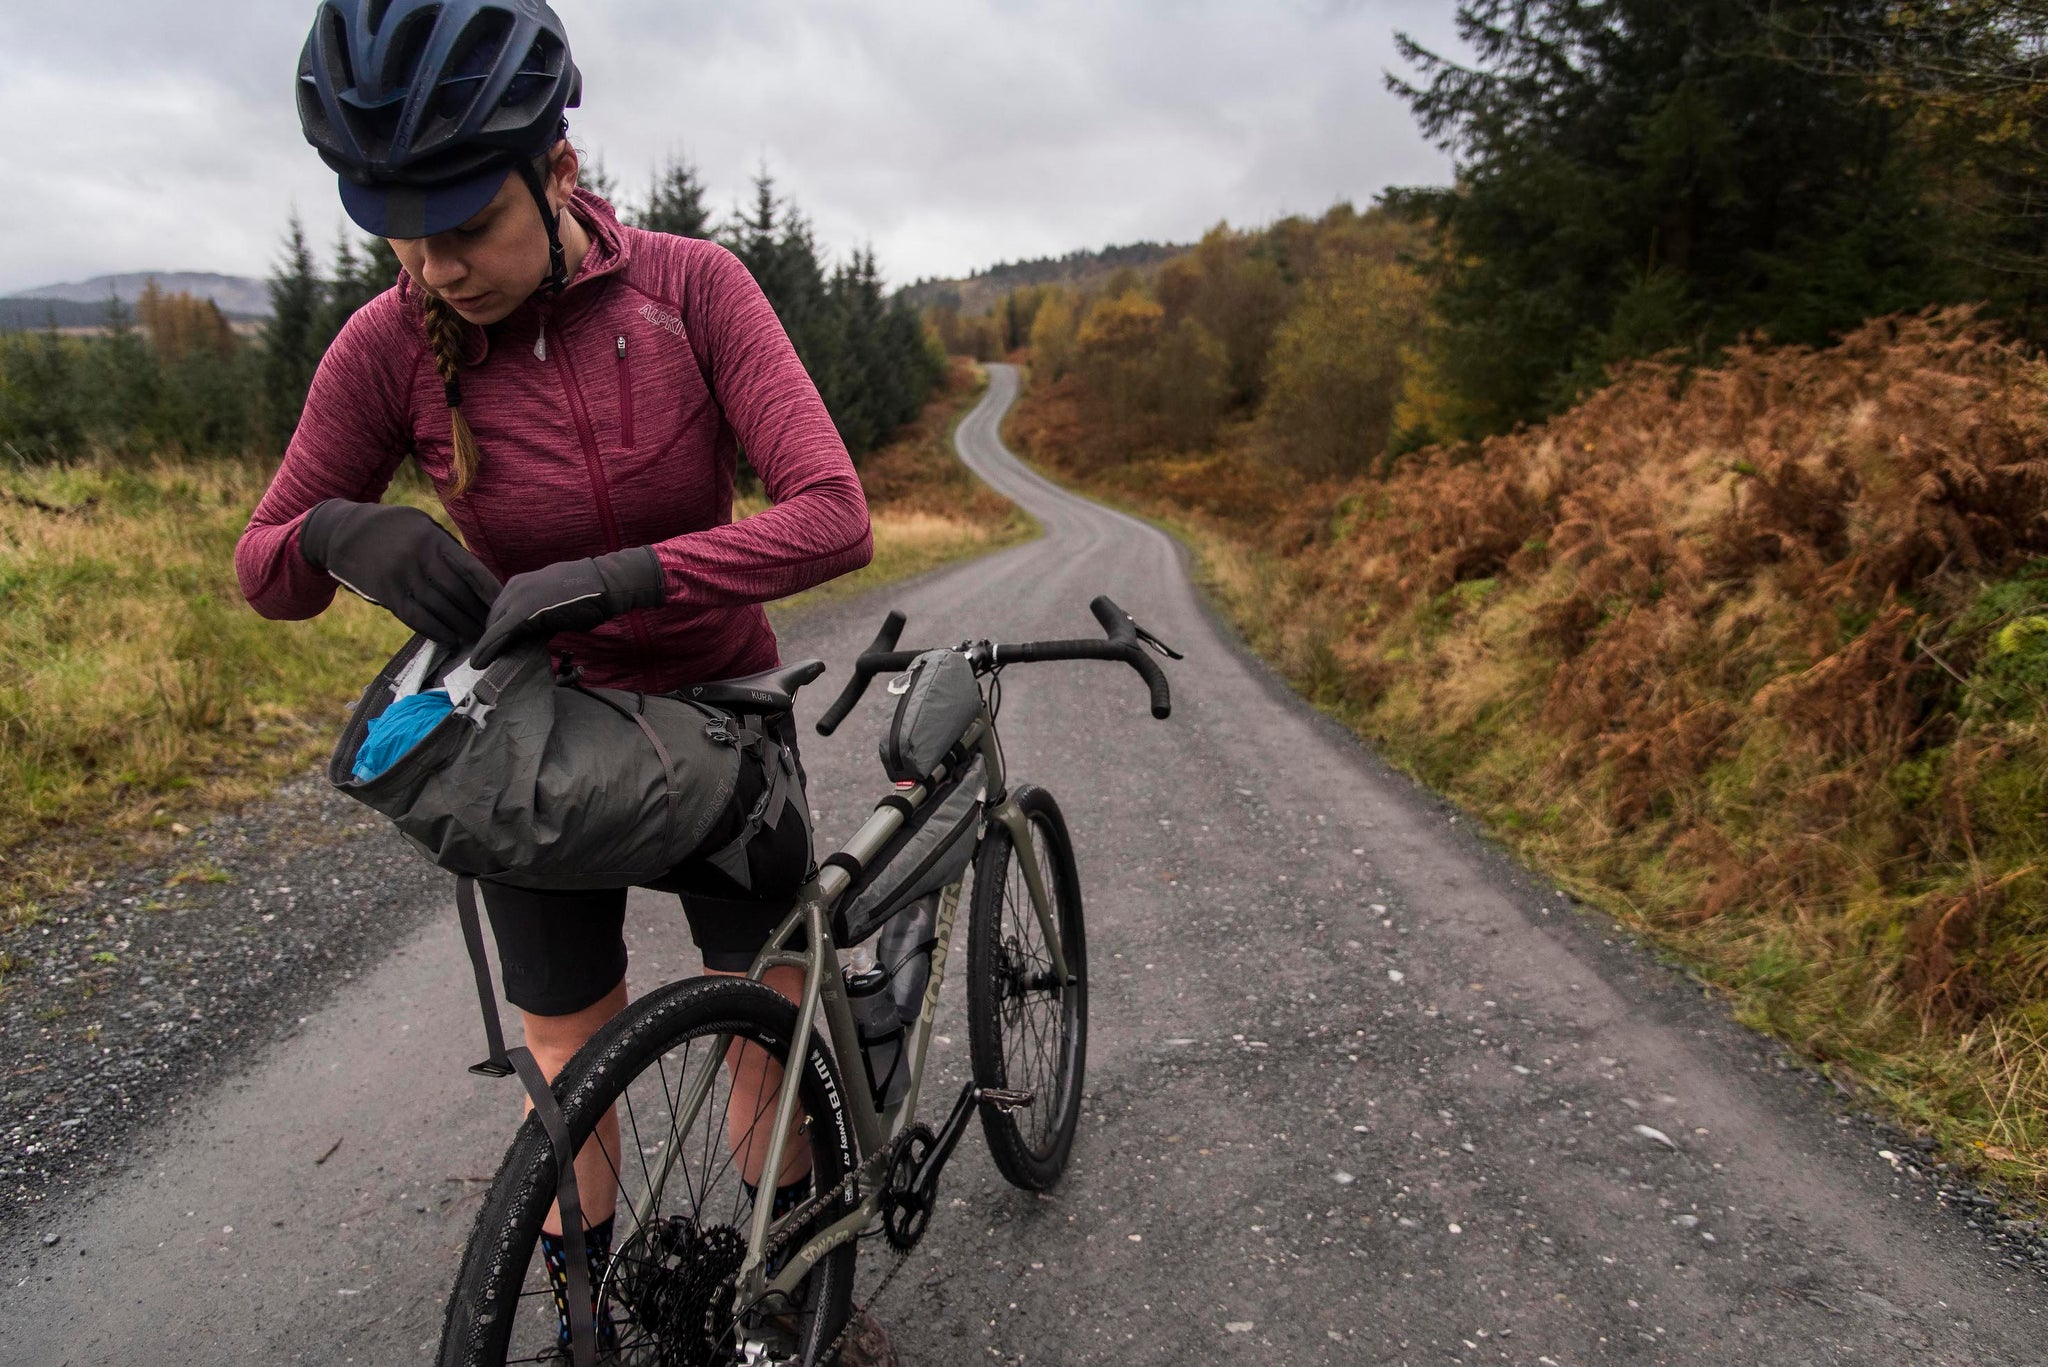 Rummaging through bikepacking bags in Galloway Forest